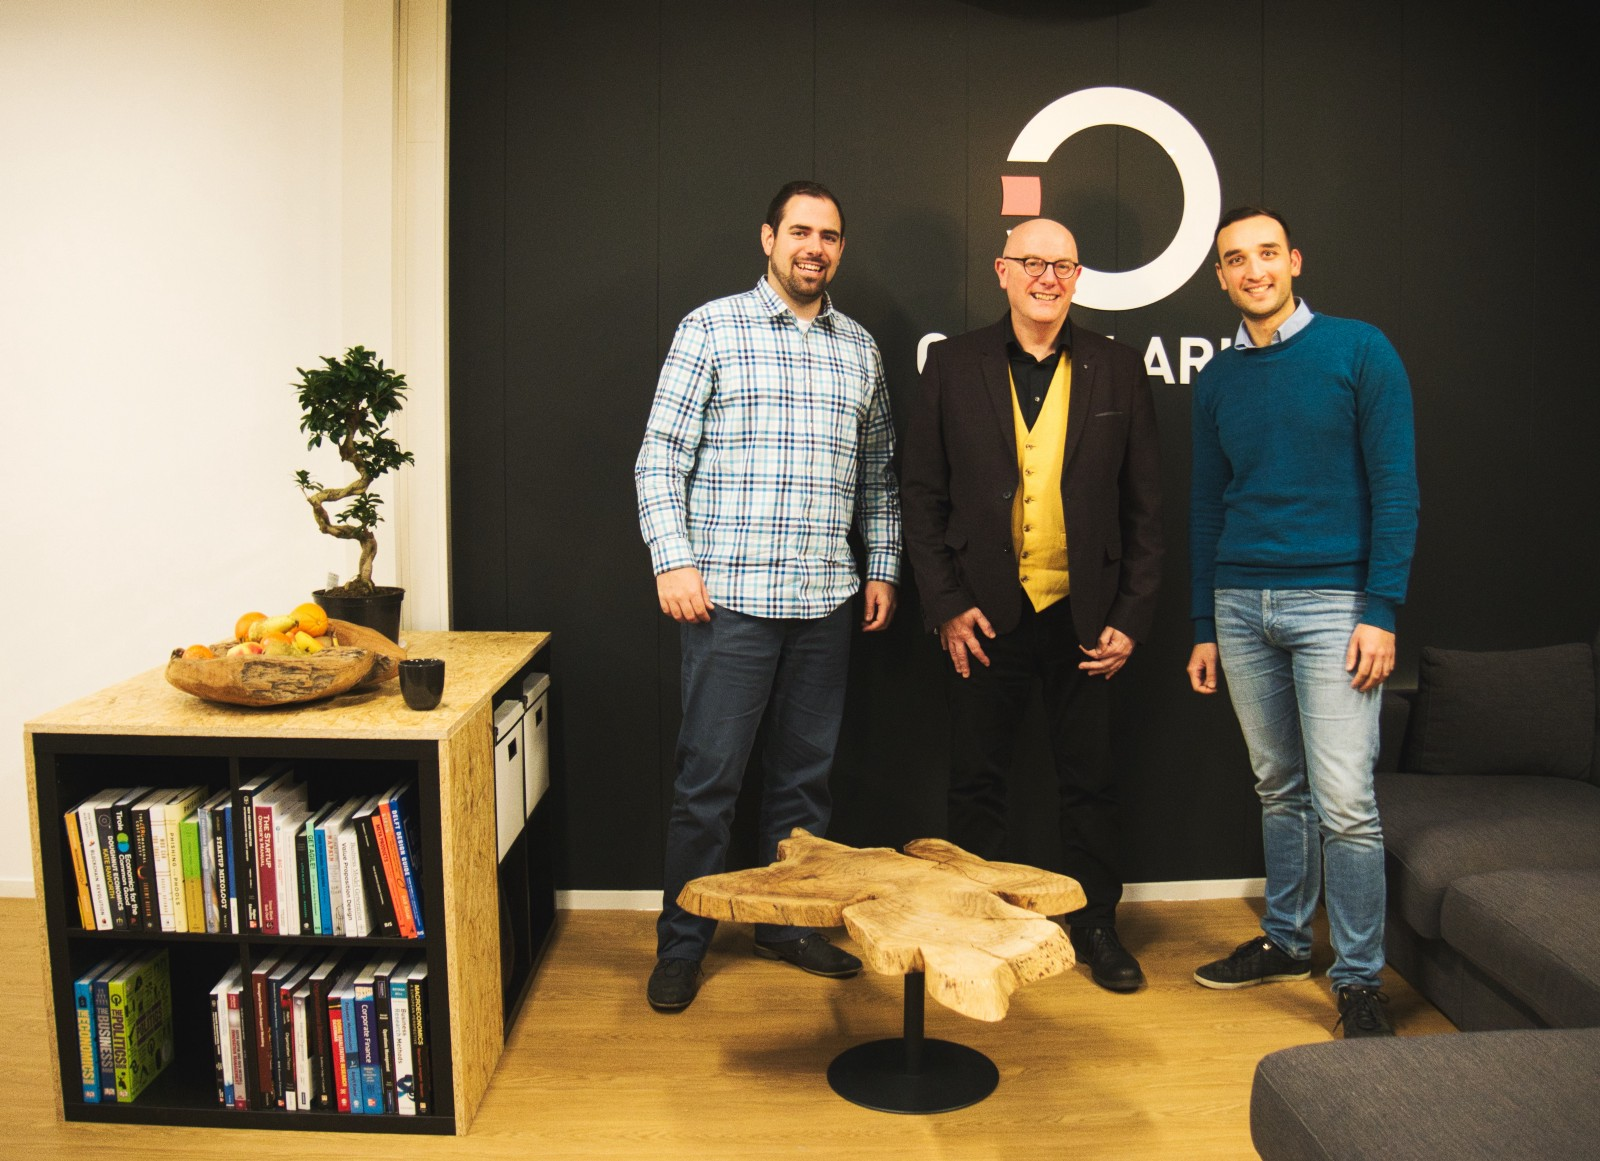 David Peck with the founders of Circularise, Jordi de Vos (left) and Mesbah Sabur (right).